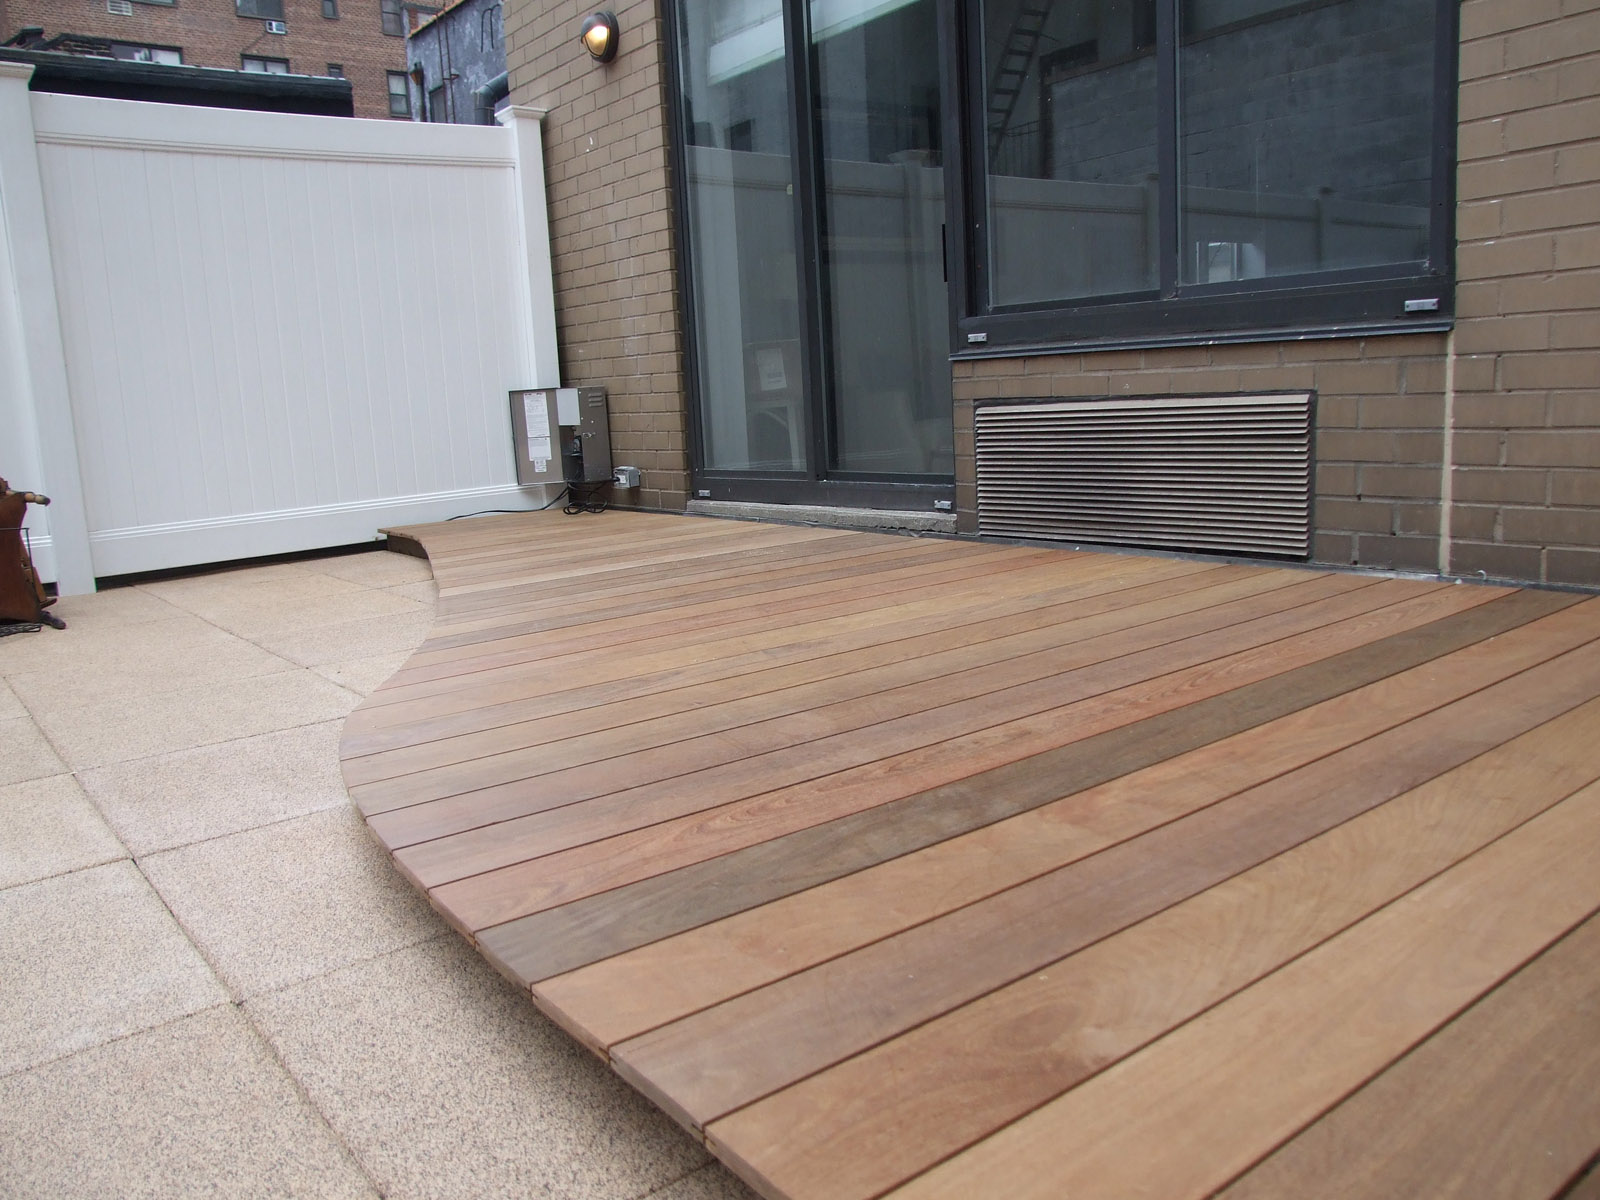 Ipe Decks Are The Most Weather Resistant | All Decked Out